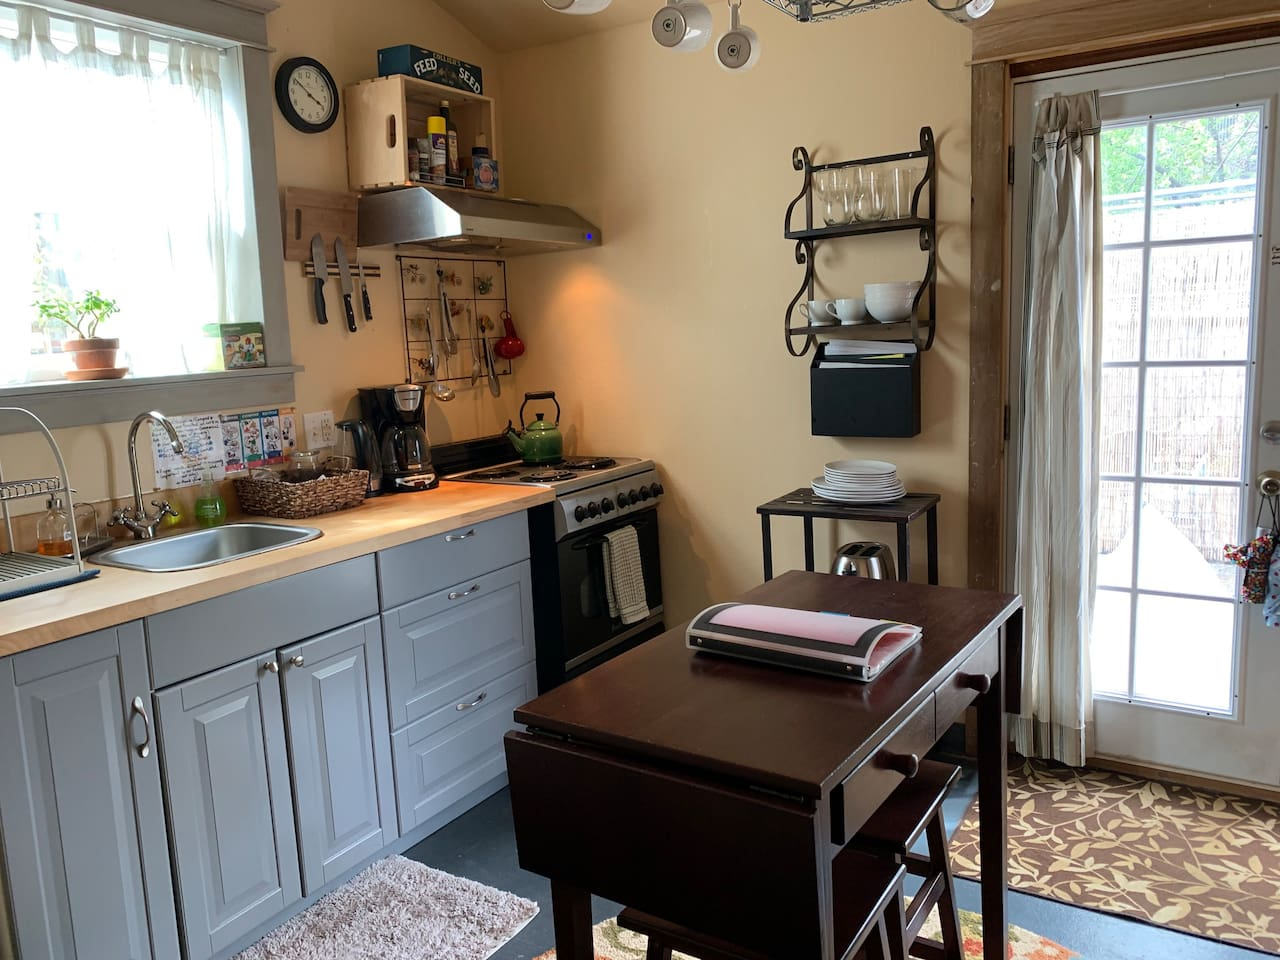 Small but functional kitchen. Most of the comforts of home. Coffee maker, full sized stove and oven, and a good sized refrigerator.